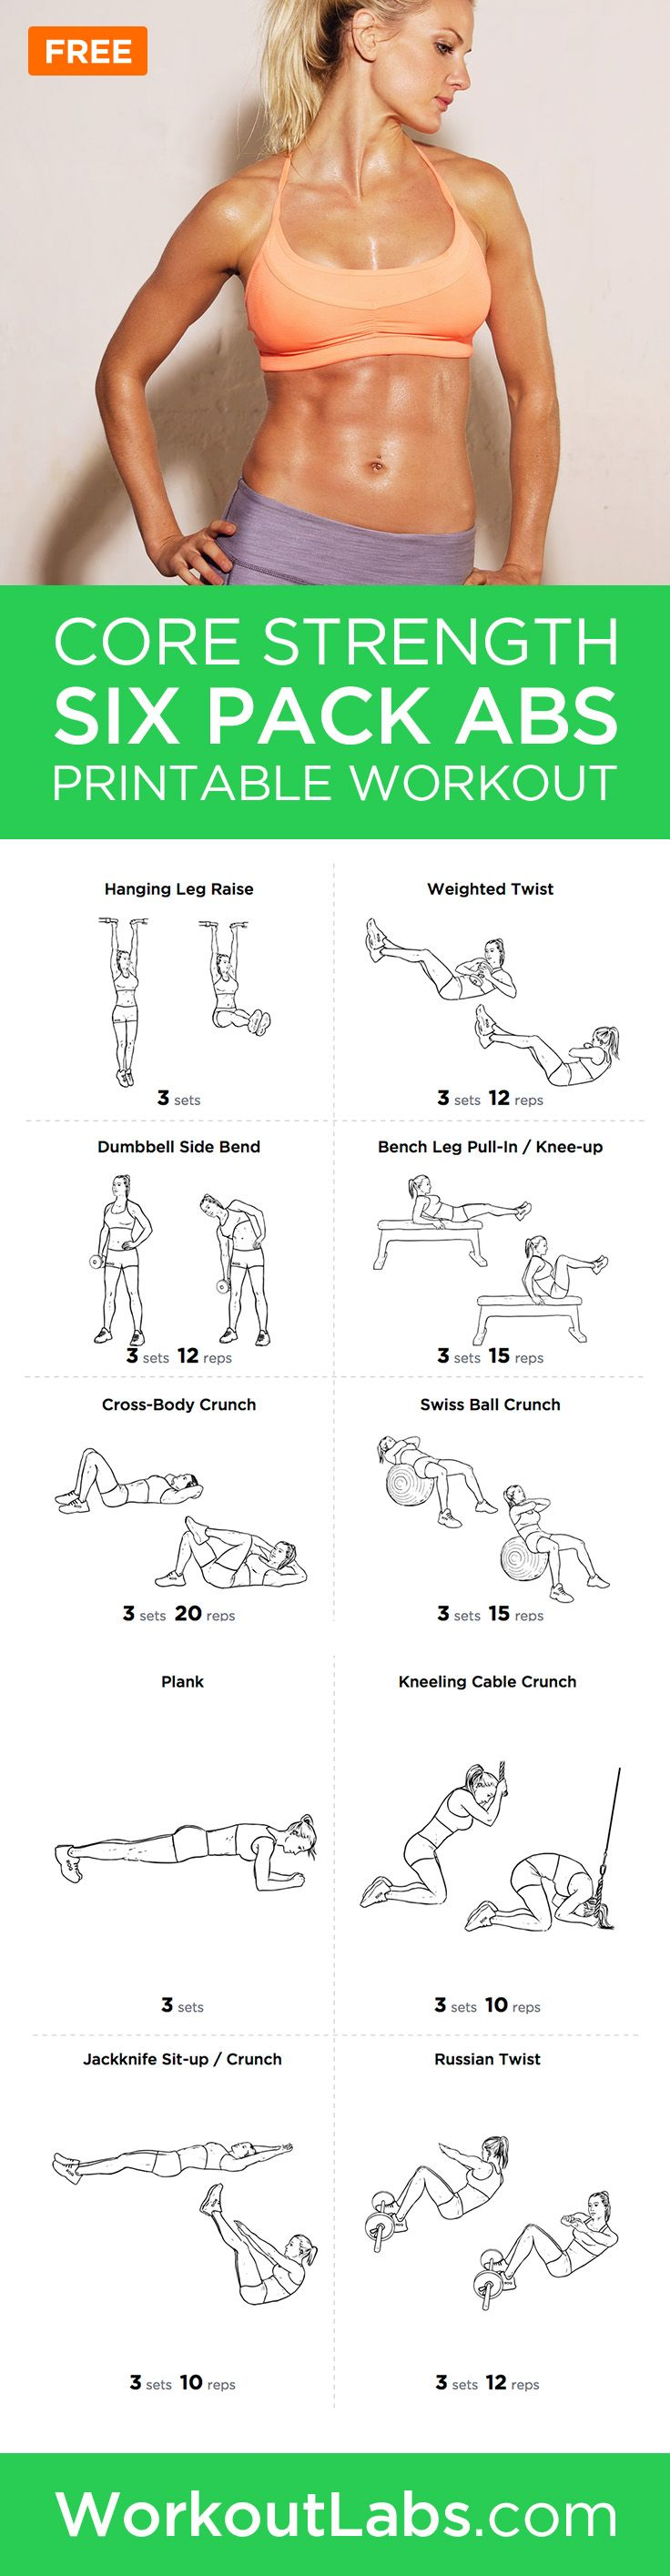 photograph relating to Printable Workout Routine known as 6 Pack Ab muscles Main Power Exercise Plan for Adult males and Females